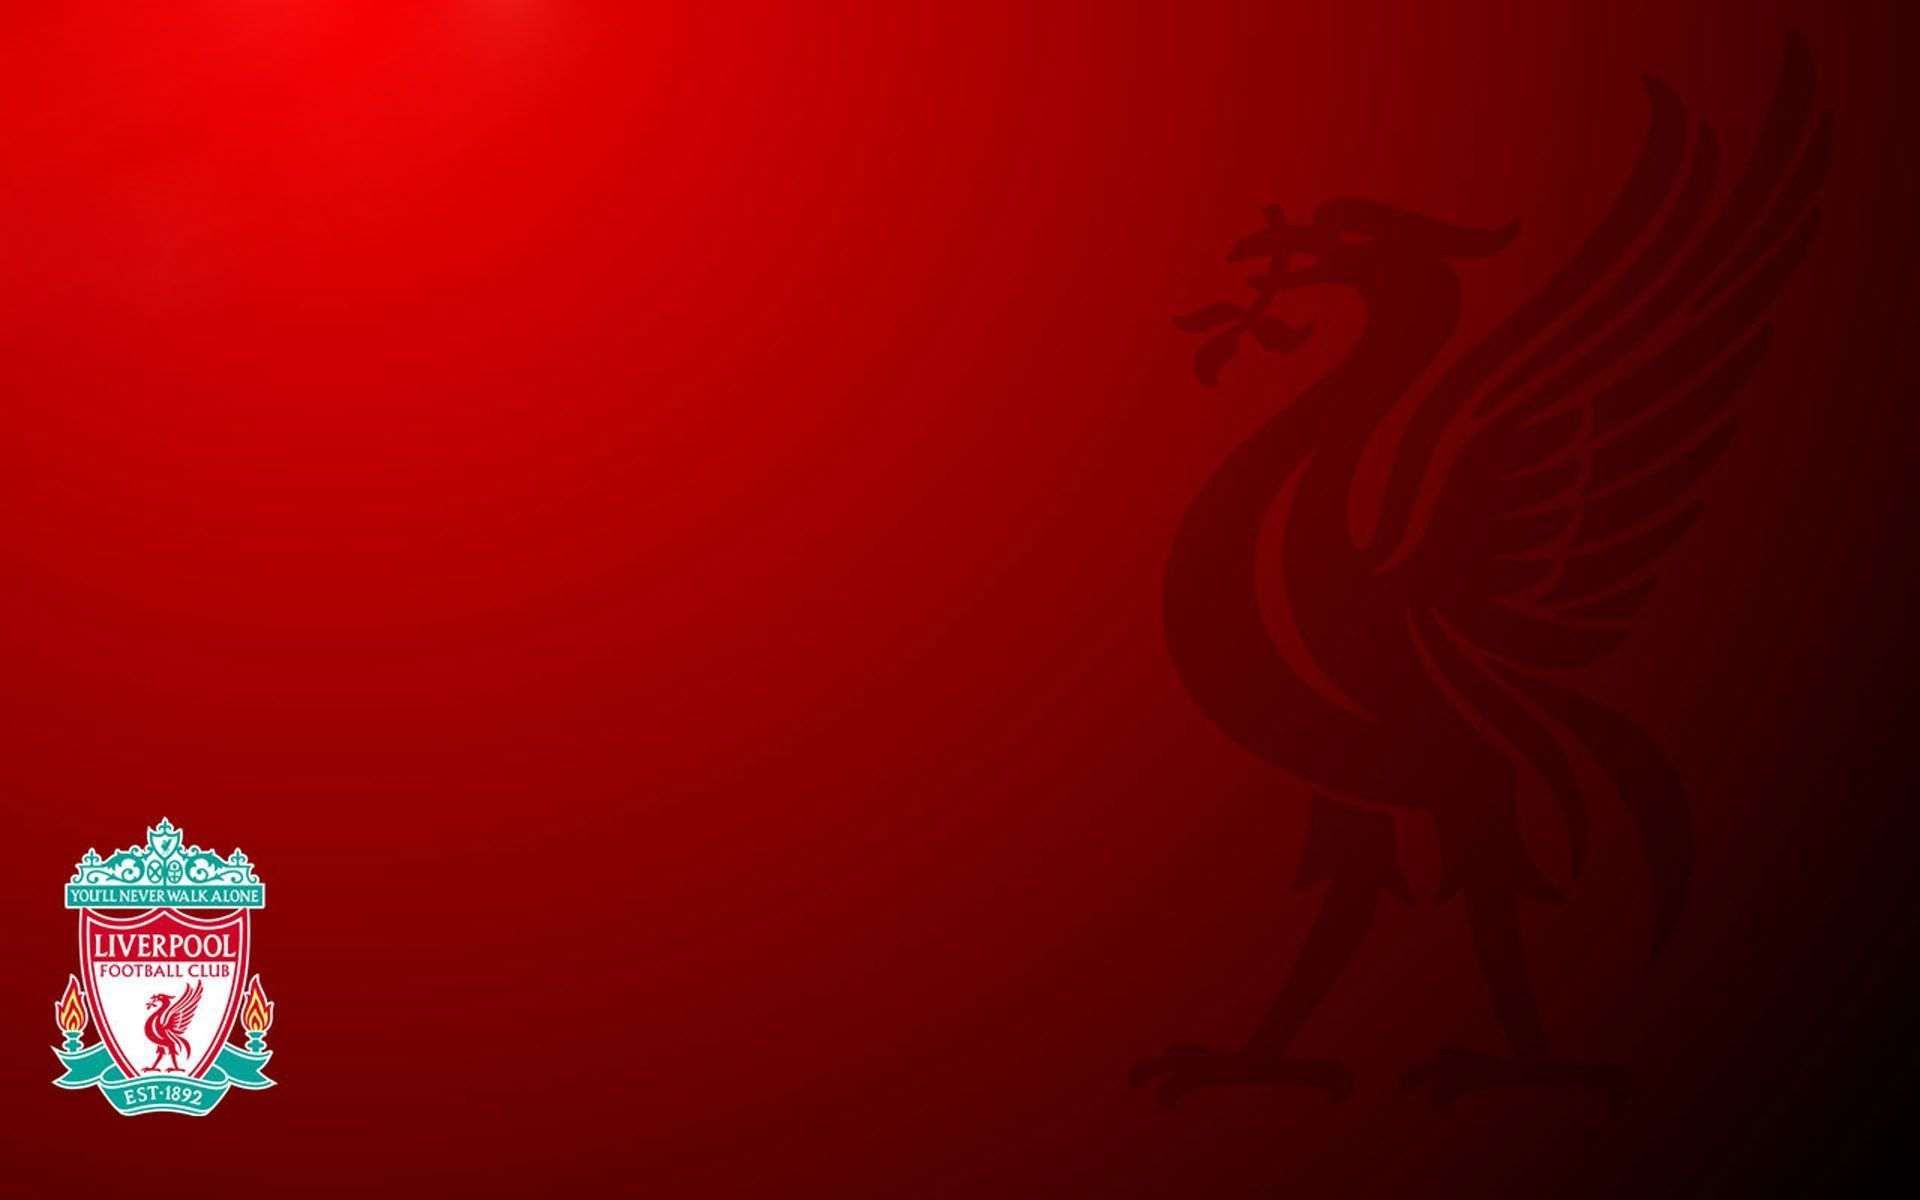 Liverpool fc wallpapers full hd free download hd wallpapers liverpool fc wallpapers full hd free download voltagebd Choice Image